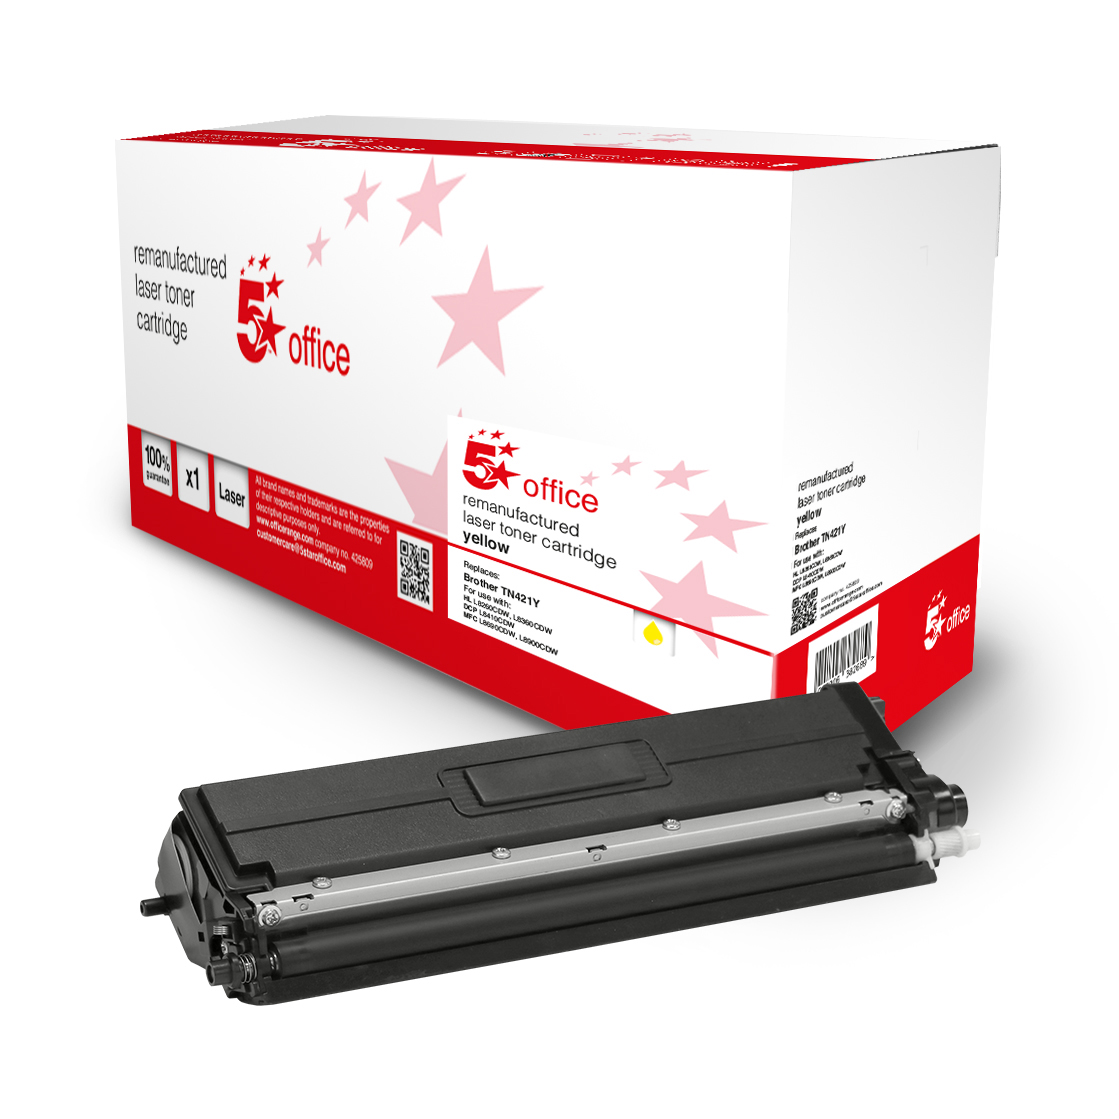 Laser Toner Cartridges 5 Star Office Remanufactured Toner Cartridge Page Life Yellow 1800pp Brother TN421Y Alternative